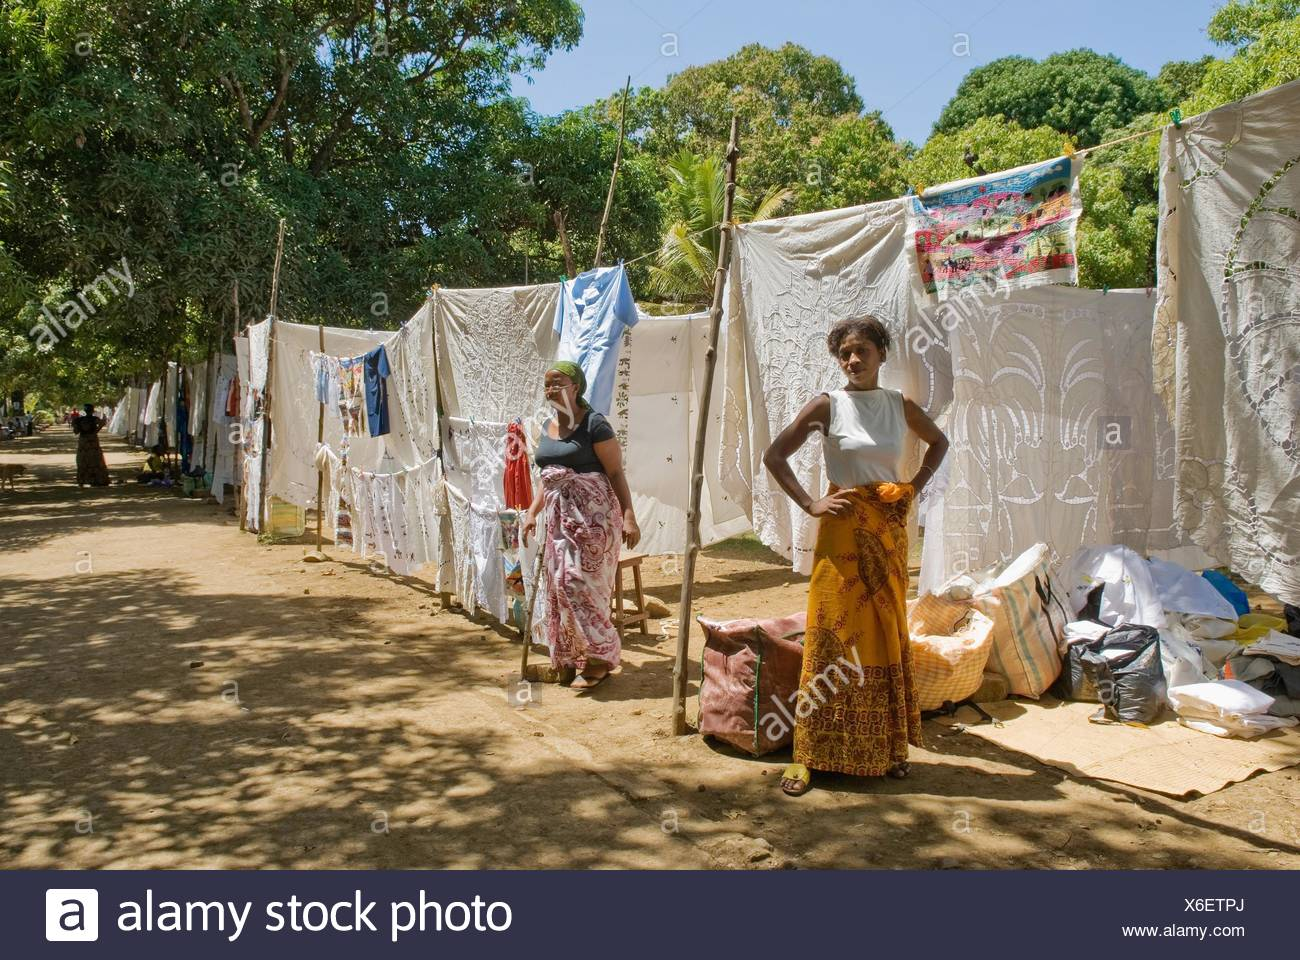 embroidered tableclothes market, Hell-Ville Andoany, Nosy Be island, Republic of Madagascar, Indian Ocean - Stock Image